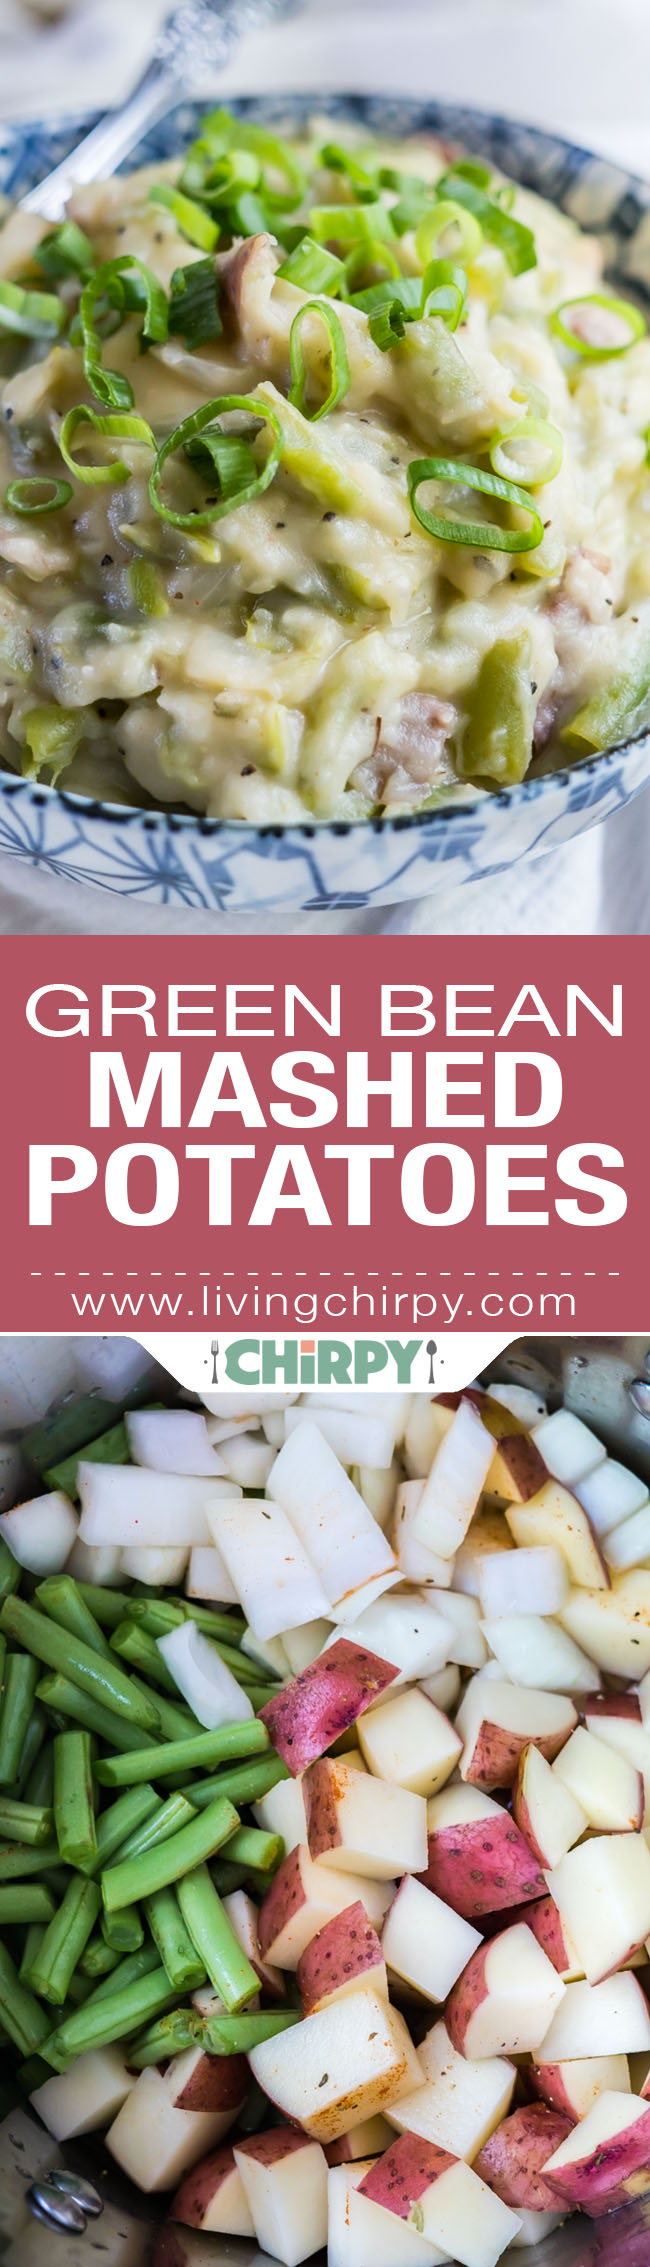 Green-Bean-Mashed-Potatoes-Pin